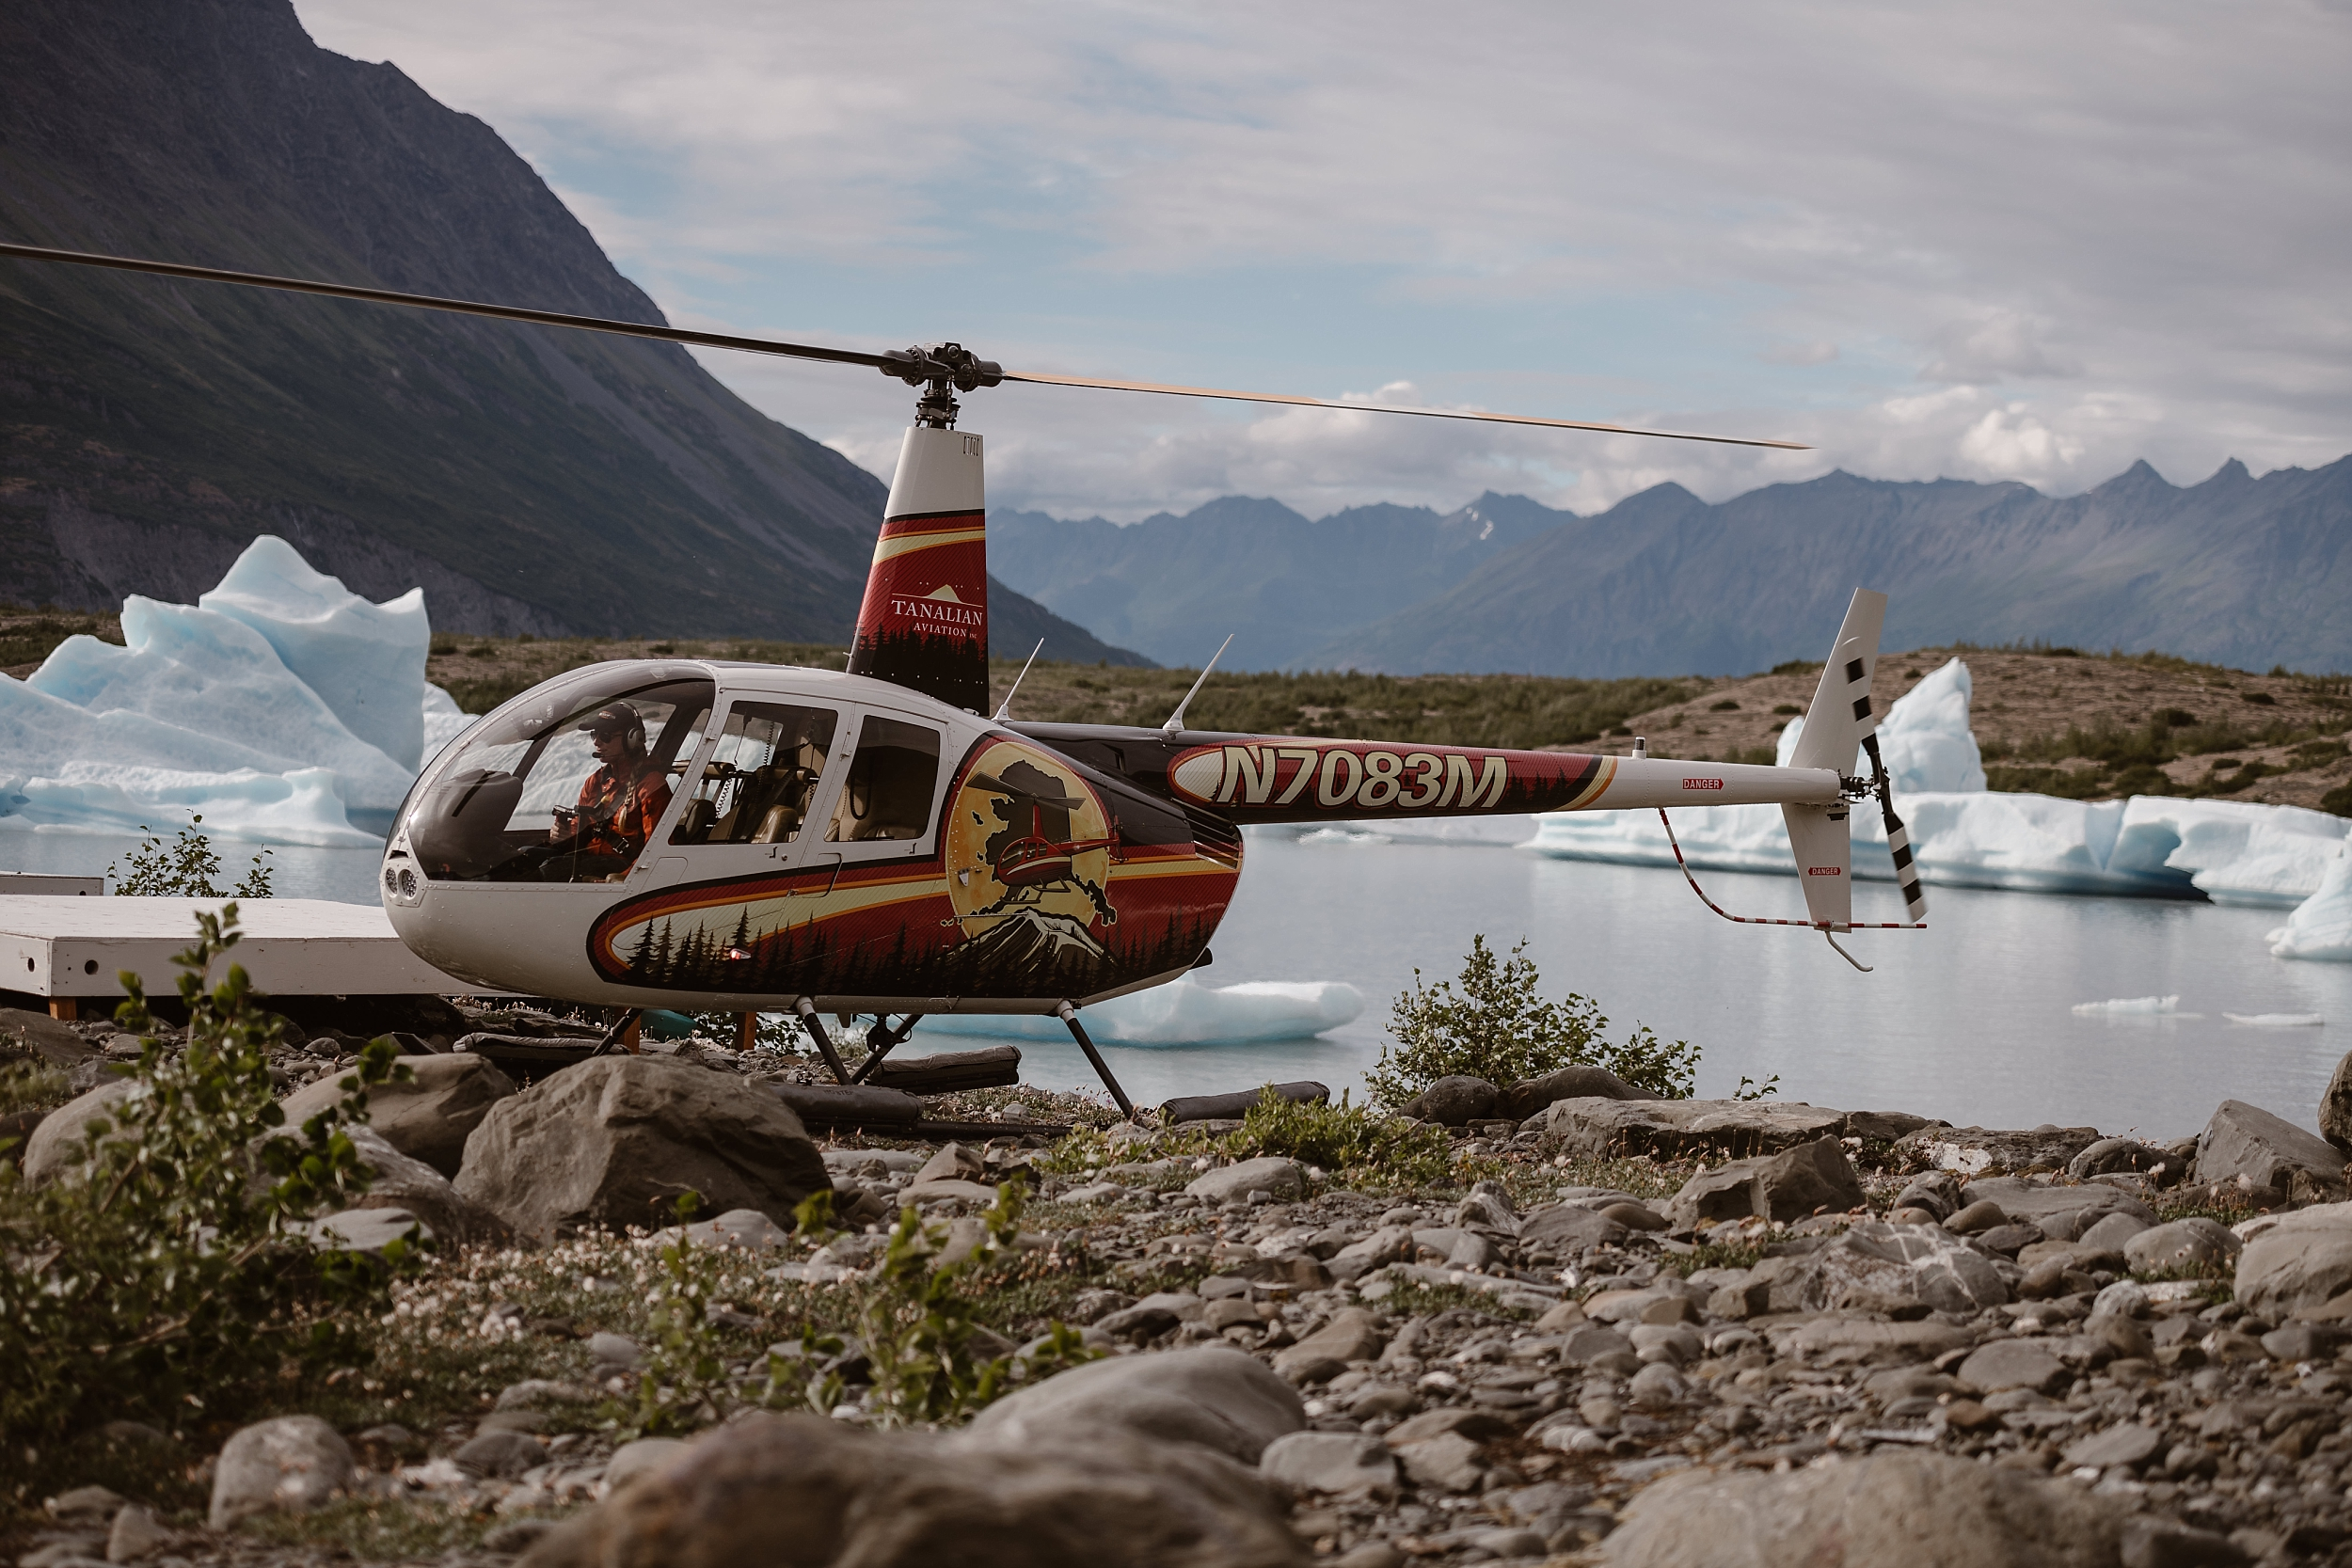 The red, yellow, and white helicopter lands on a rocky beach in front of a glacial lake that has huge chunks of ice floating in it. In the background, giant mountain peaks jut toward the sky.